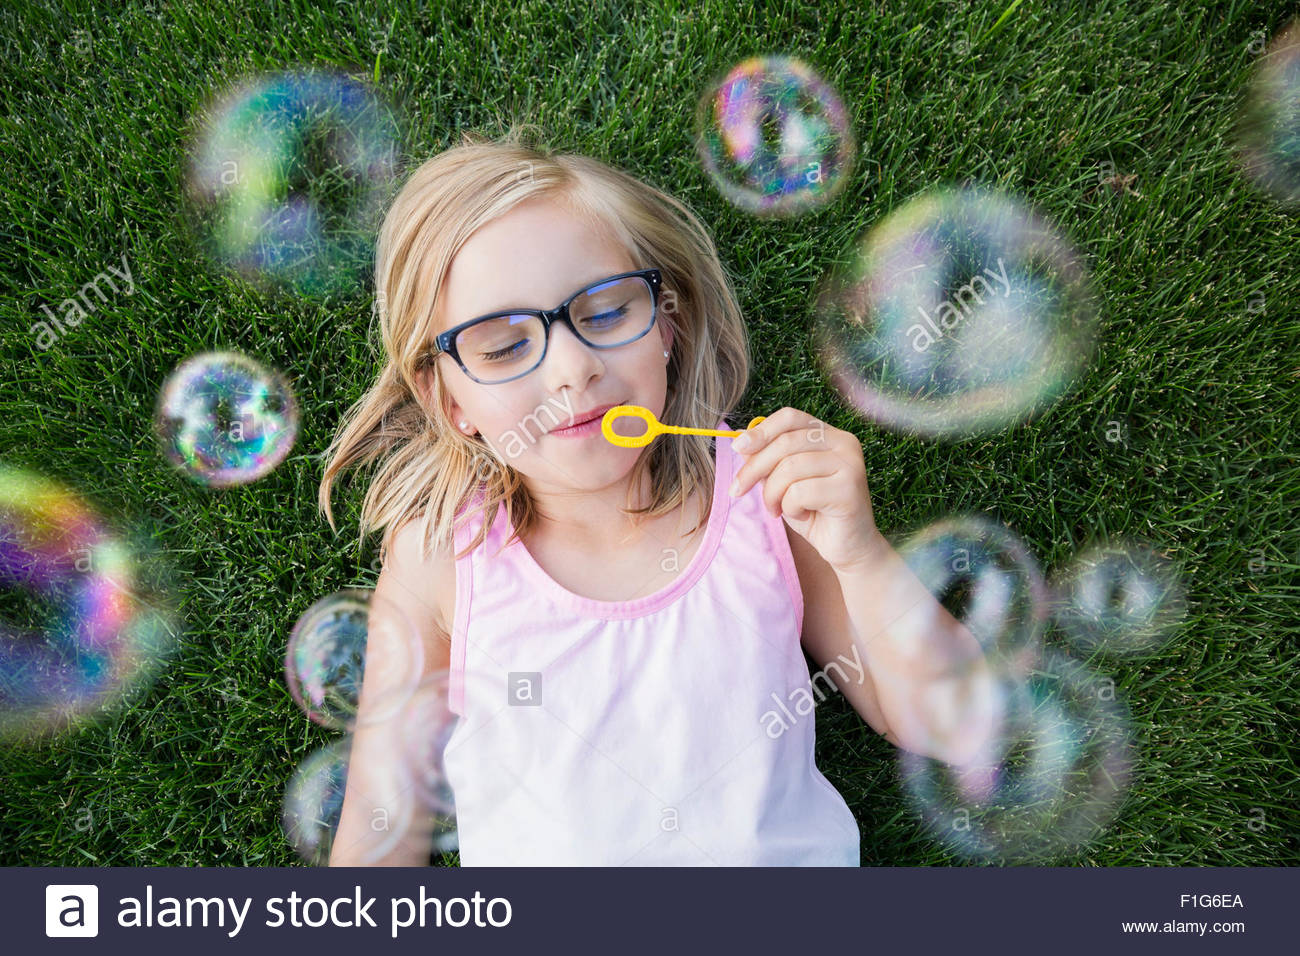 Overhead view blonde girl with eyeglasses blowing bubbles - Stock Image